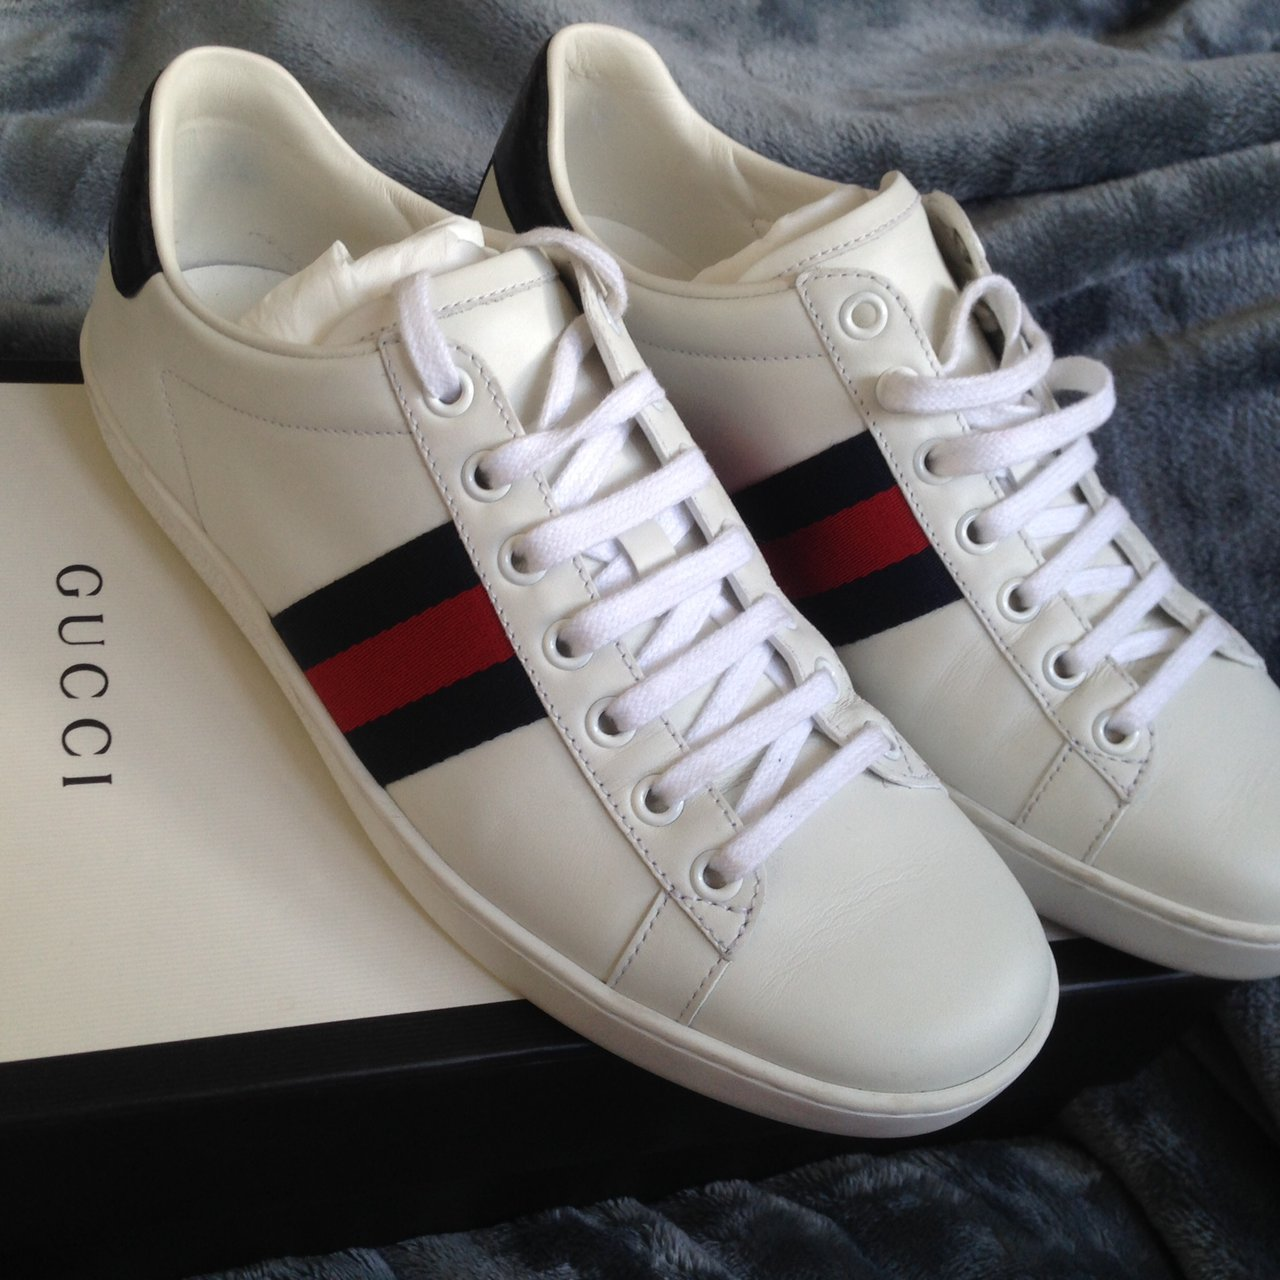 faf4a78df523 Authentic Gucci Ace sneakers in white